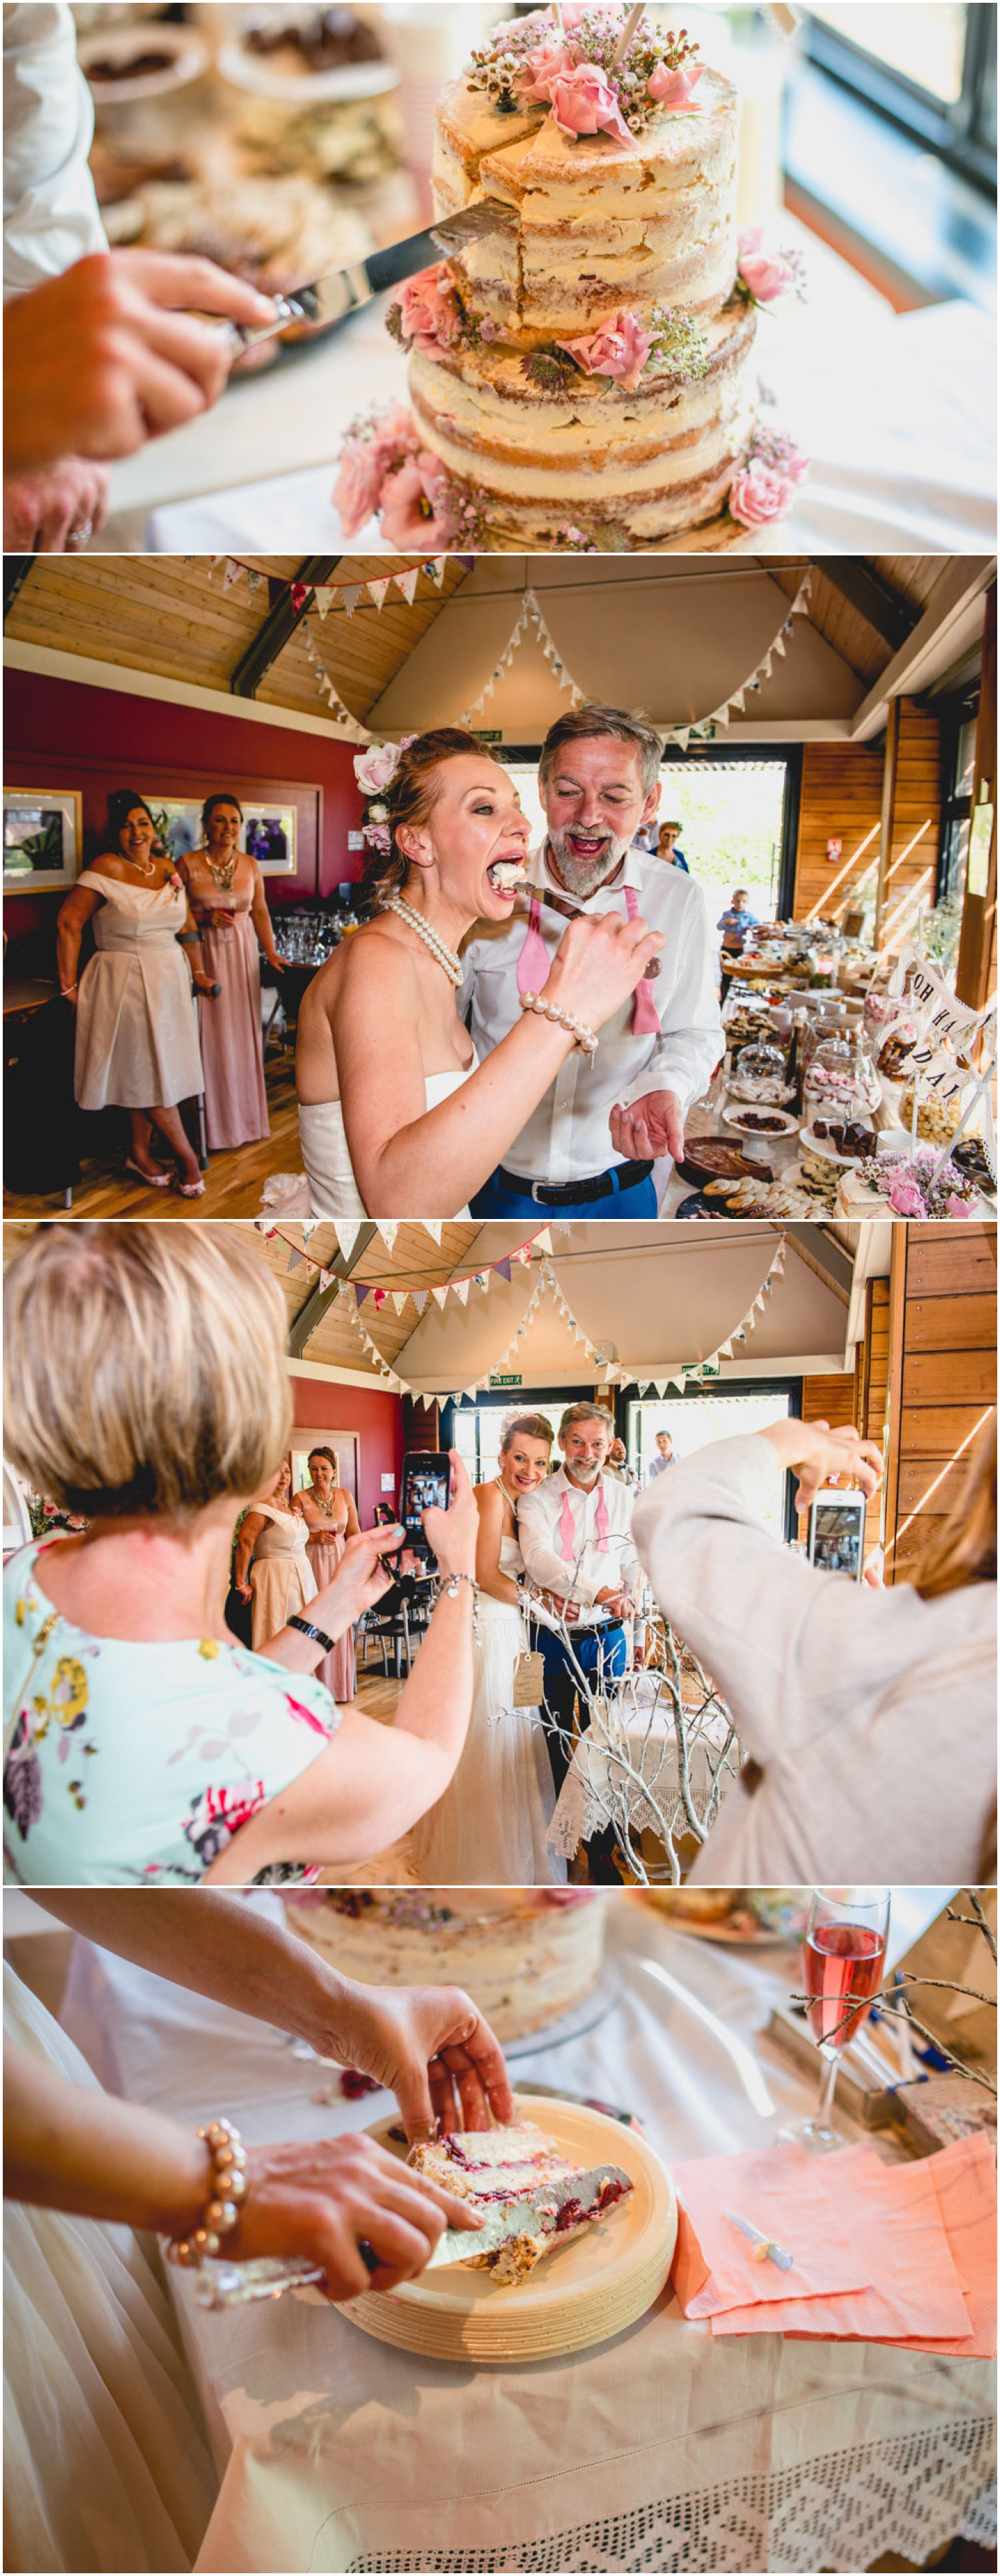 Daniella and Mark Wedding at Blakesley Hall in Birmingham, West Midlands by Lisa Carpenter Photography, Sutton Coldfield based wedding photographer, cake cutting ceremony